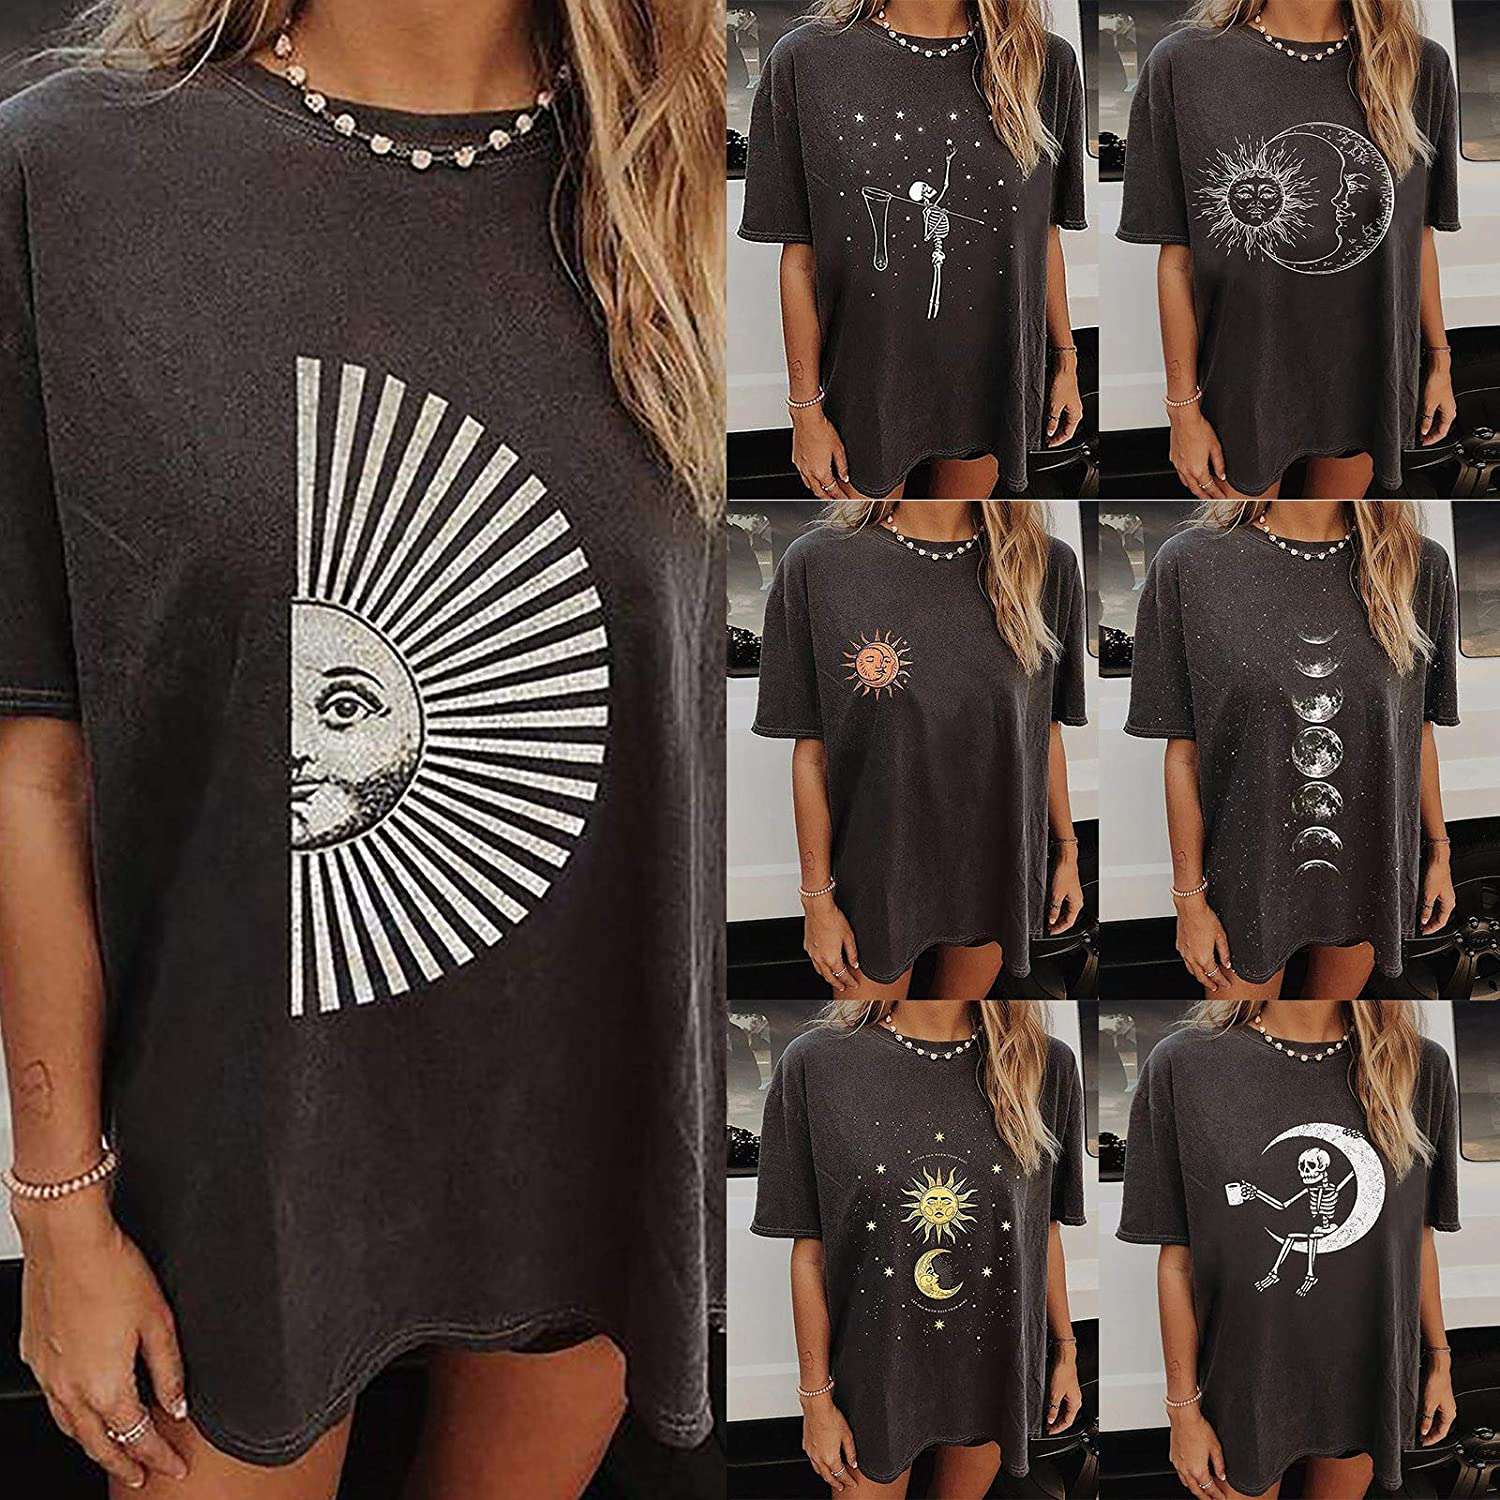 Women Short Sleeve Tunic Tops Plus Size Vintage Sun Moon Print Graphic Tee Shirt Baggy Casual Crewneck Pullover Tops